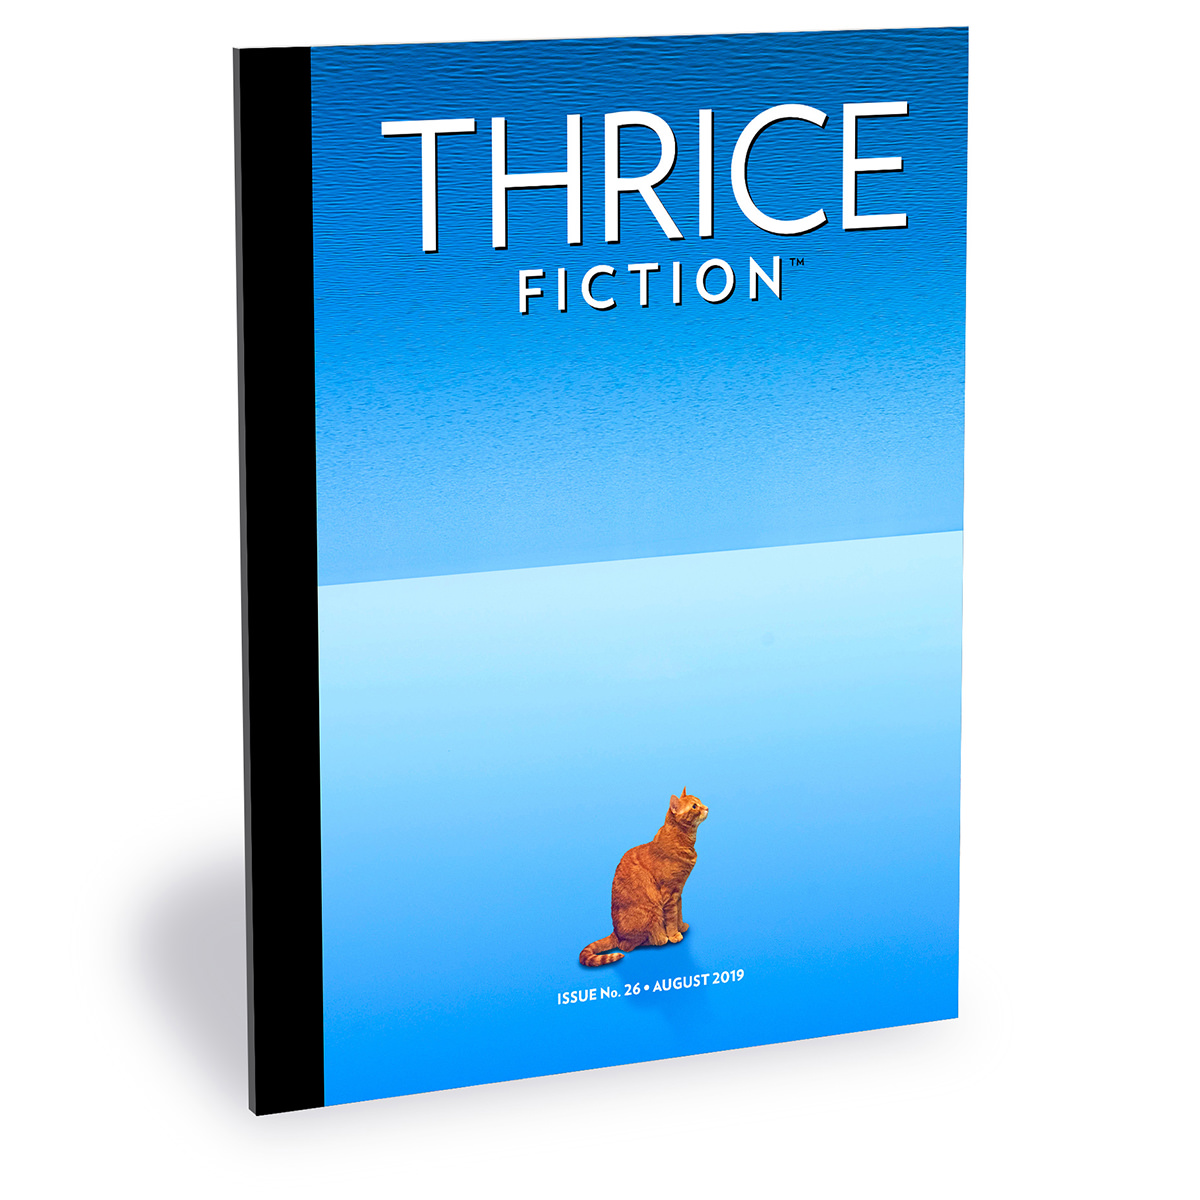 The cover of Thrice Fiction Magazine No. 26 showing a ginger orange cat sitting on the sky while the ocean floats abover her as a new sky.